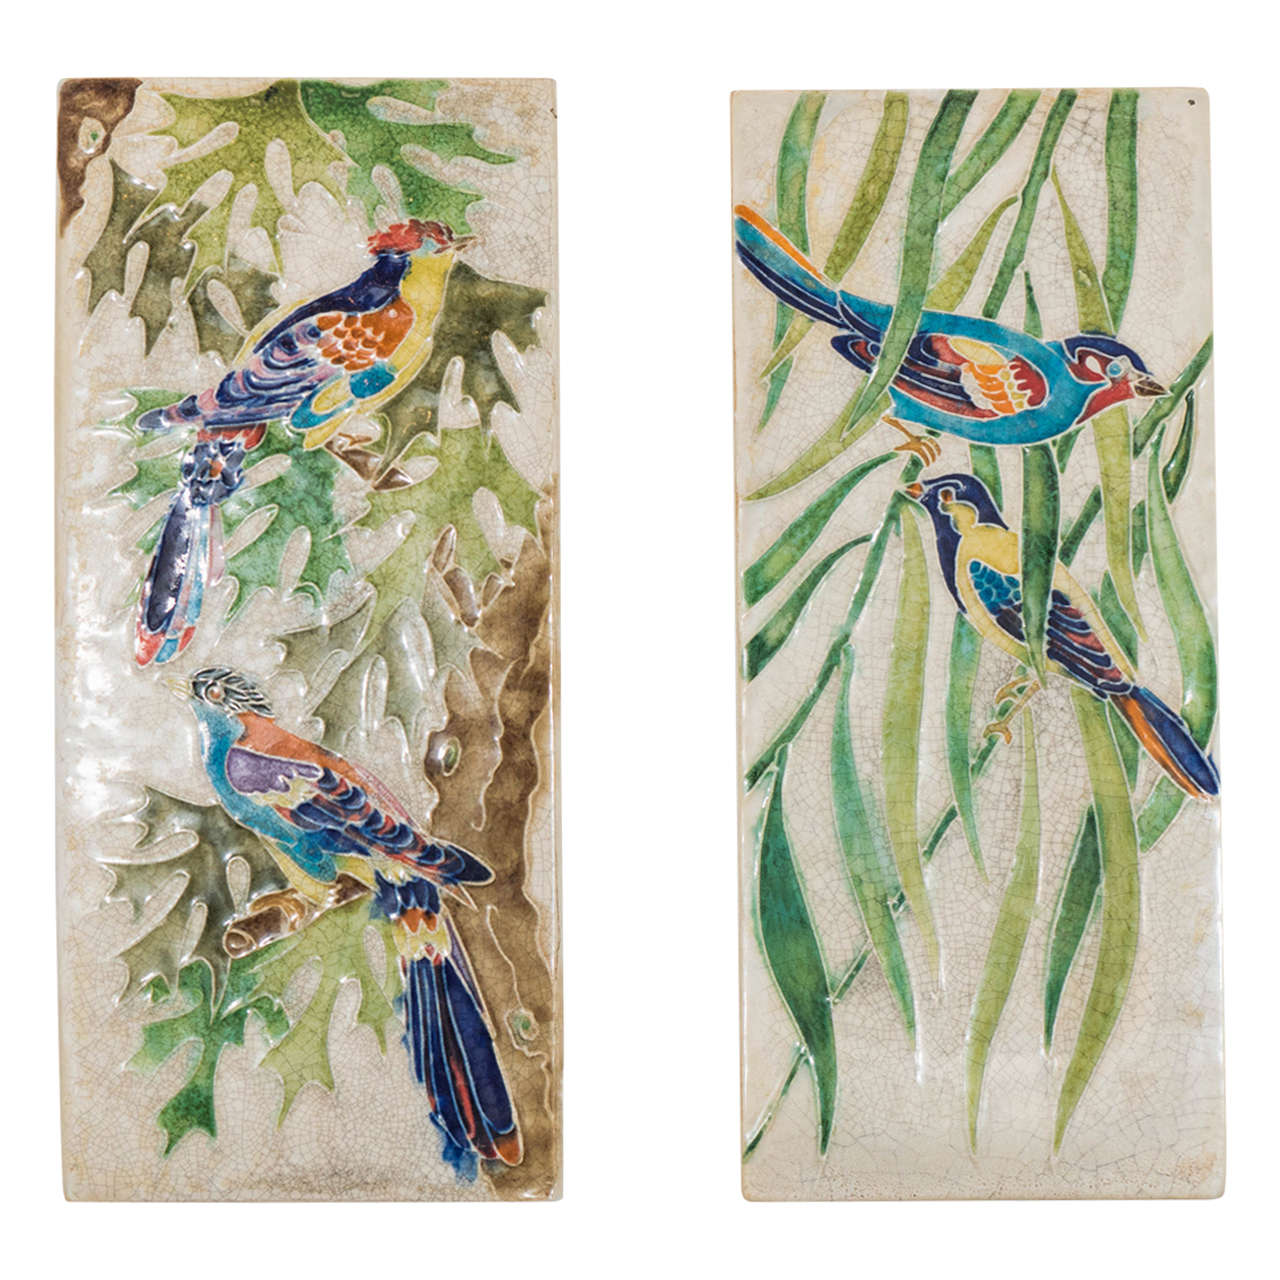 An italian pair of hand painted ceramic tiles with perching birds an italian pair of hand painted ceramic tiles with perching birds for sale dailygadgetfo Images